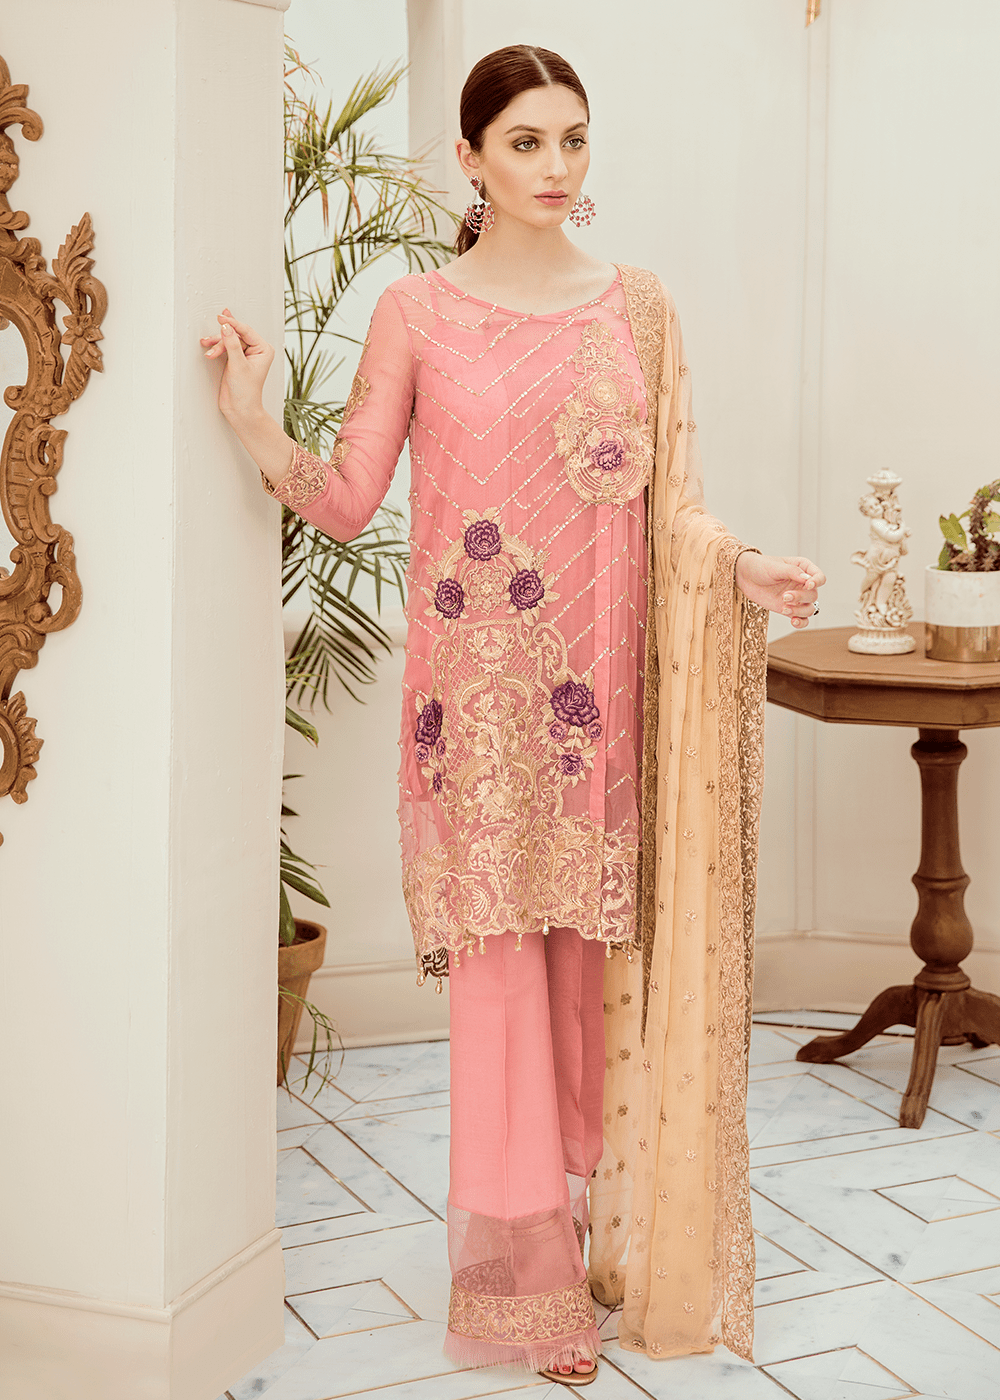 09 Regal Rose (Afrozeh - Riona Collection 2019)